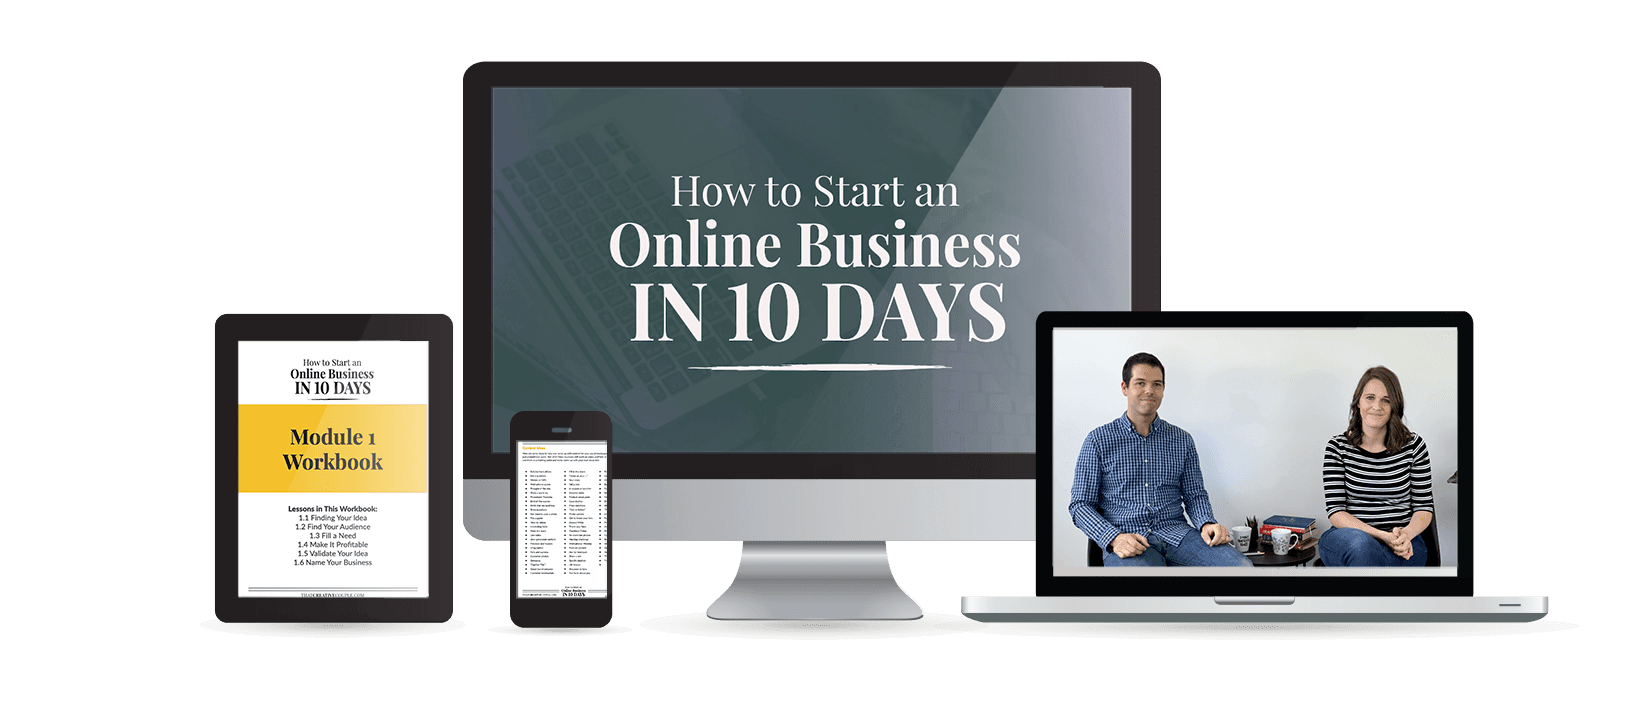 How to Start an Online Business in 10 Days